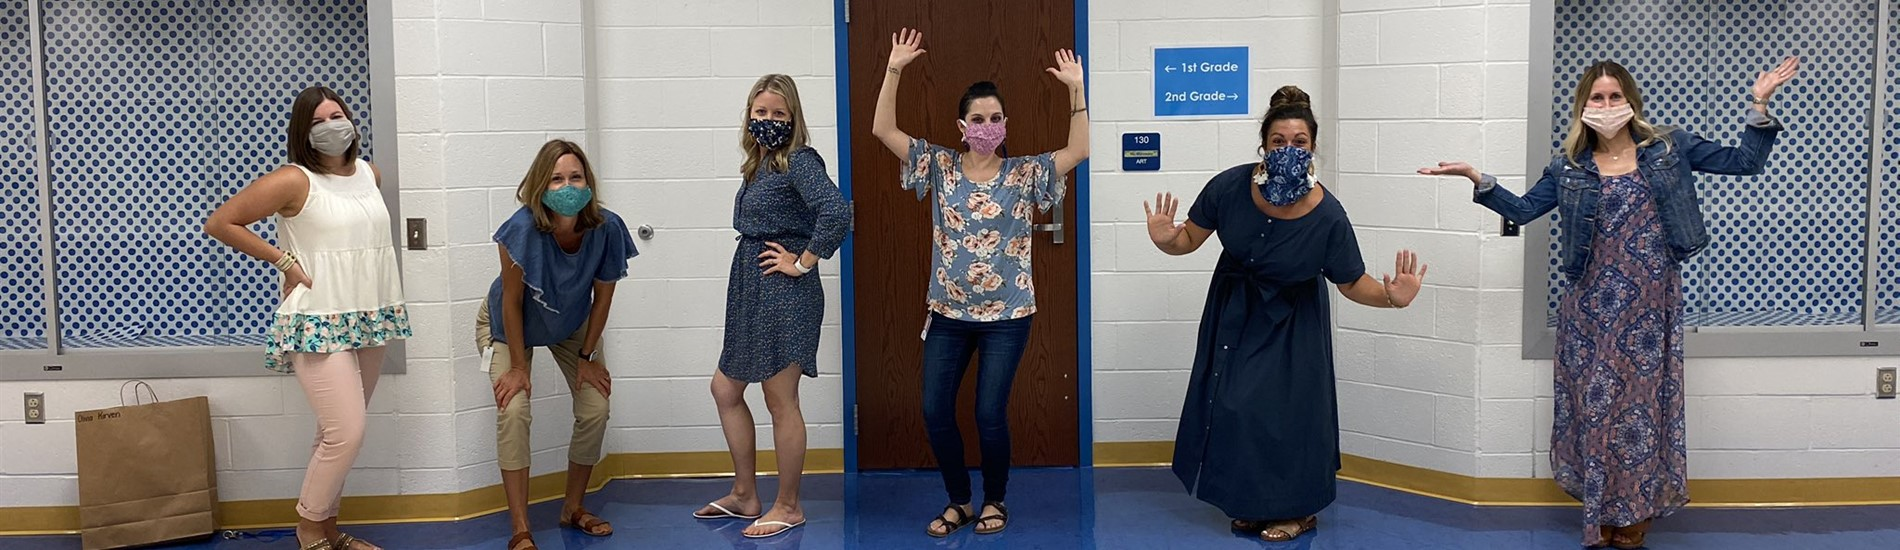 Muse Elementary teachers social distancing and wearing masks